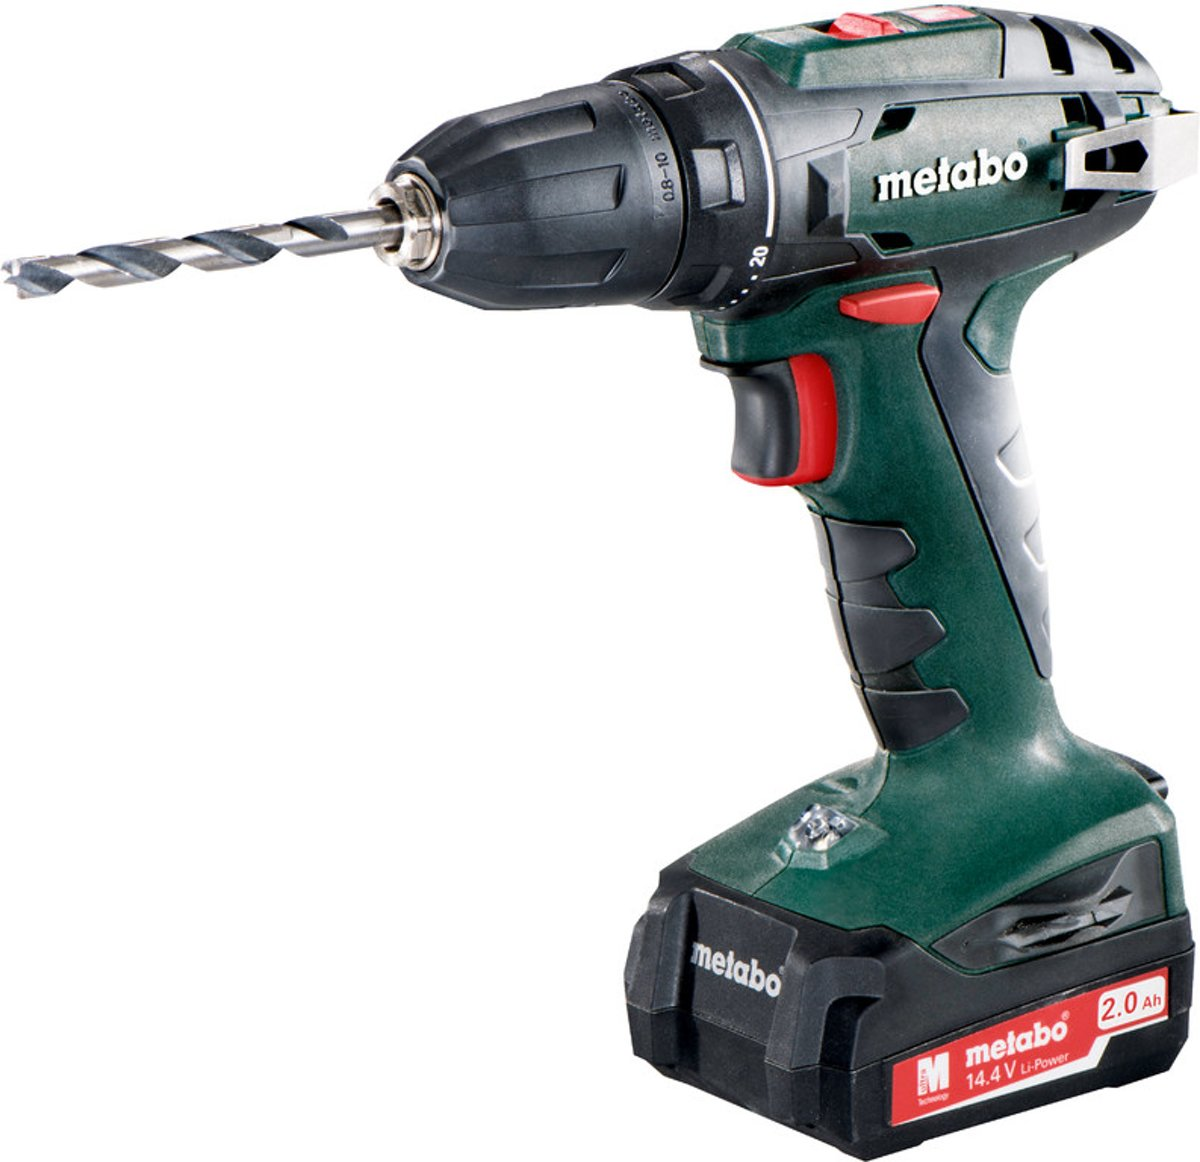 Hitachi Accuboormachine 14.4 Volt Metabo Bs 14 4 Accuboormachine 14 4 Volt Incl 2 Li Ion Accu Packs 2 Ah En Lader In Koffer